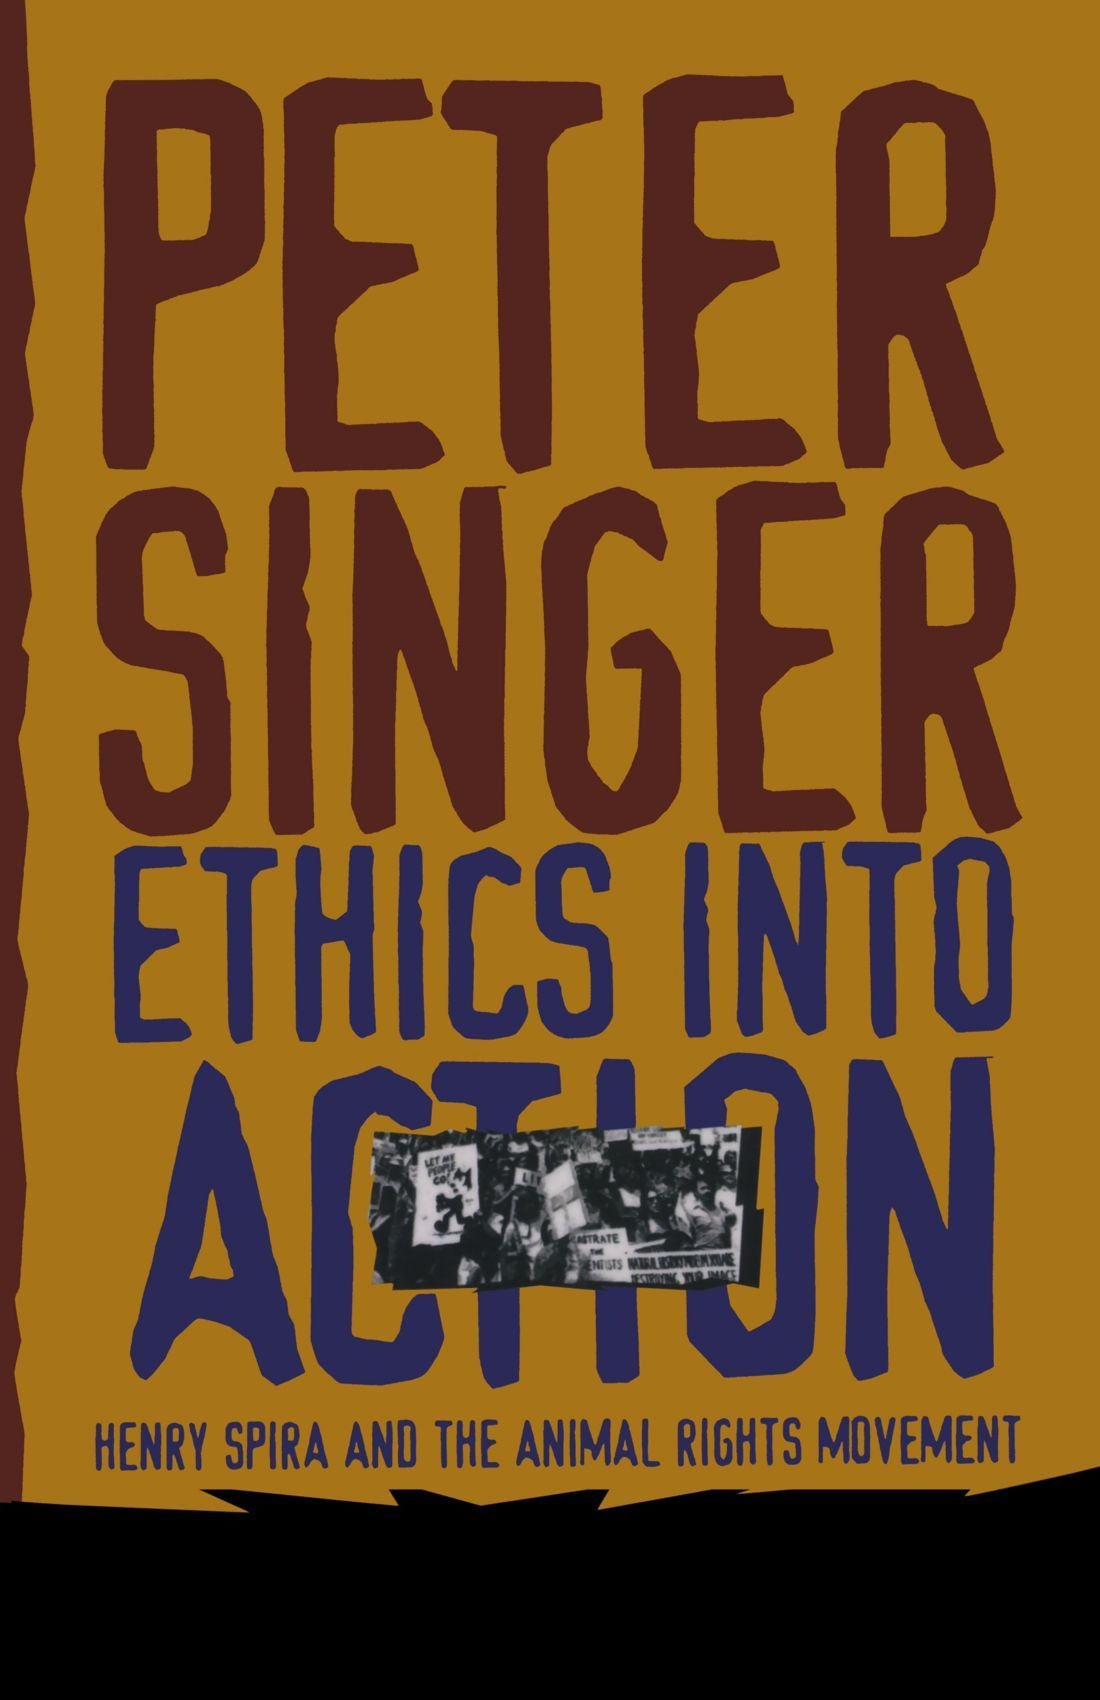 ethics into action henry spira and the animal rights movement ethics into action henry spira and the animal rights movement co uk peter singer 9780847697533 books